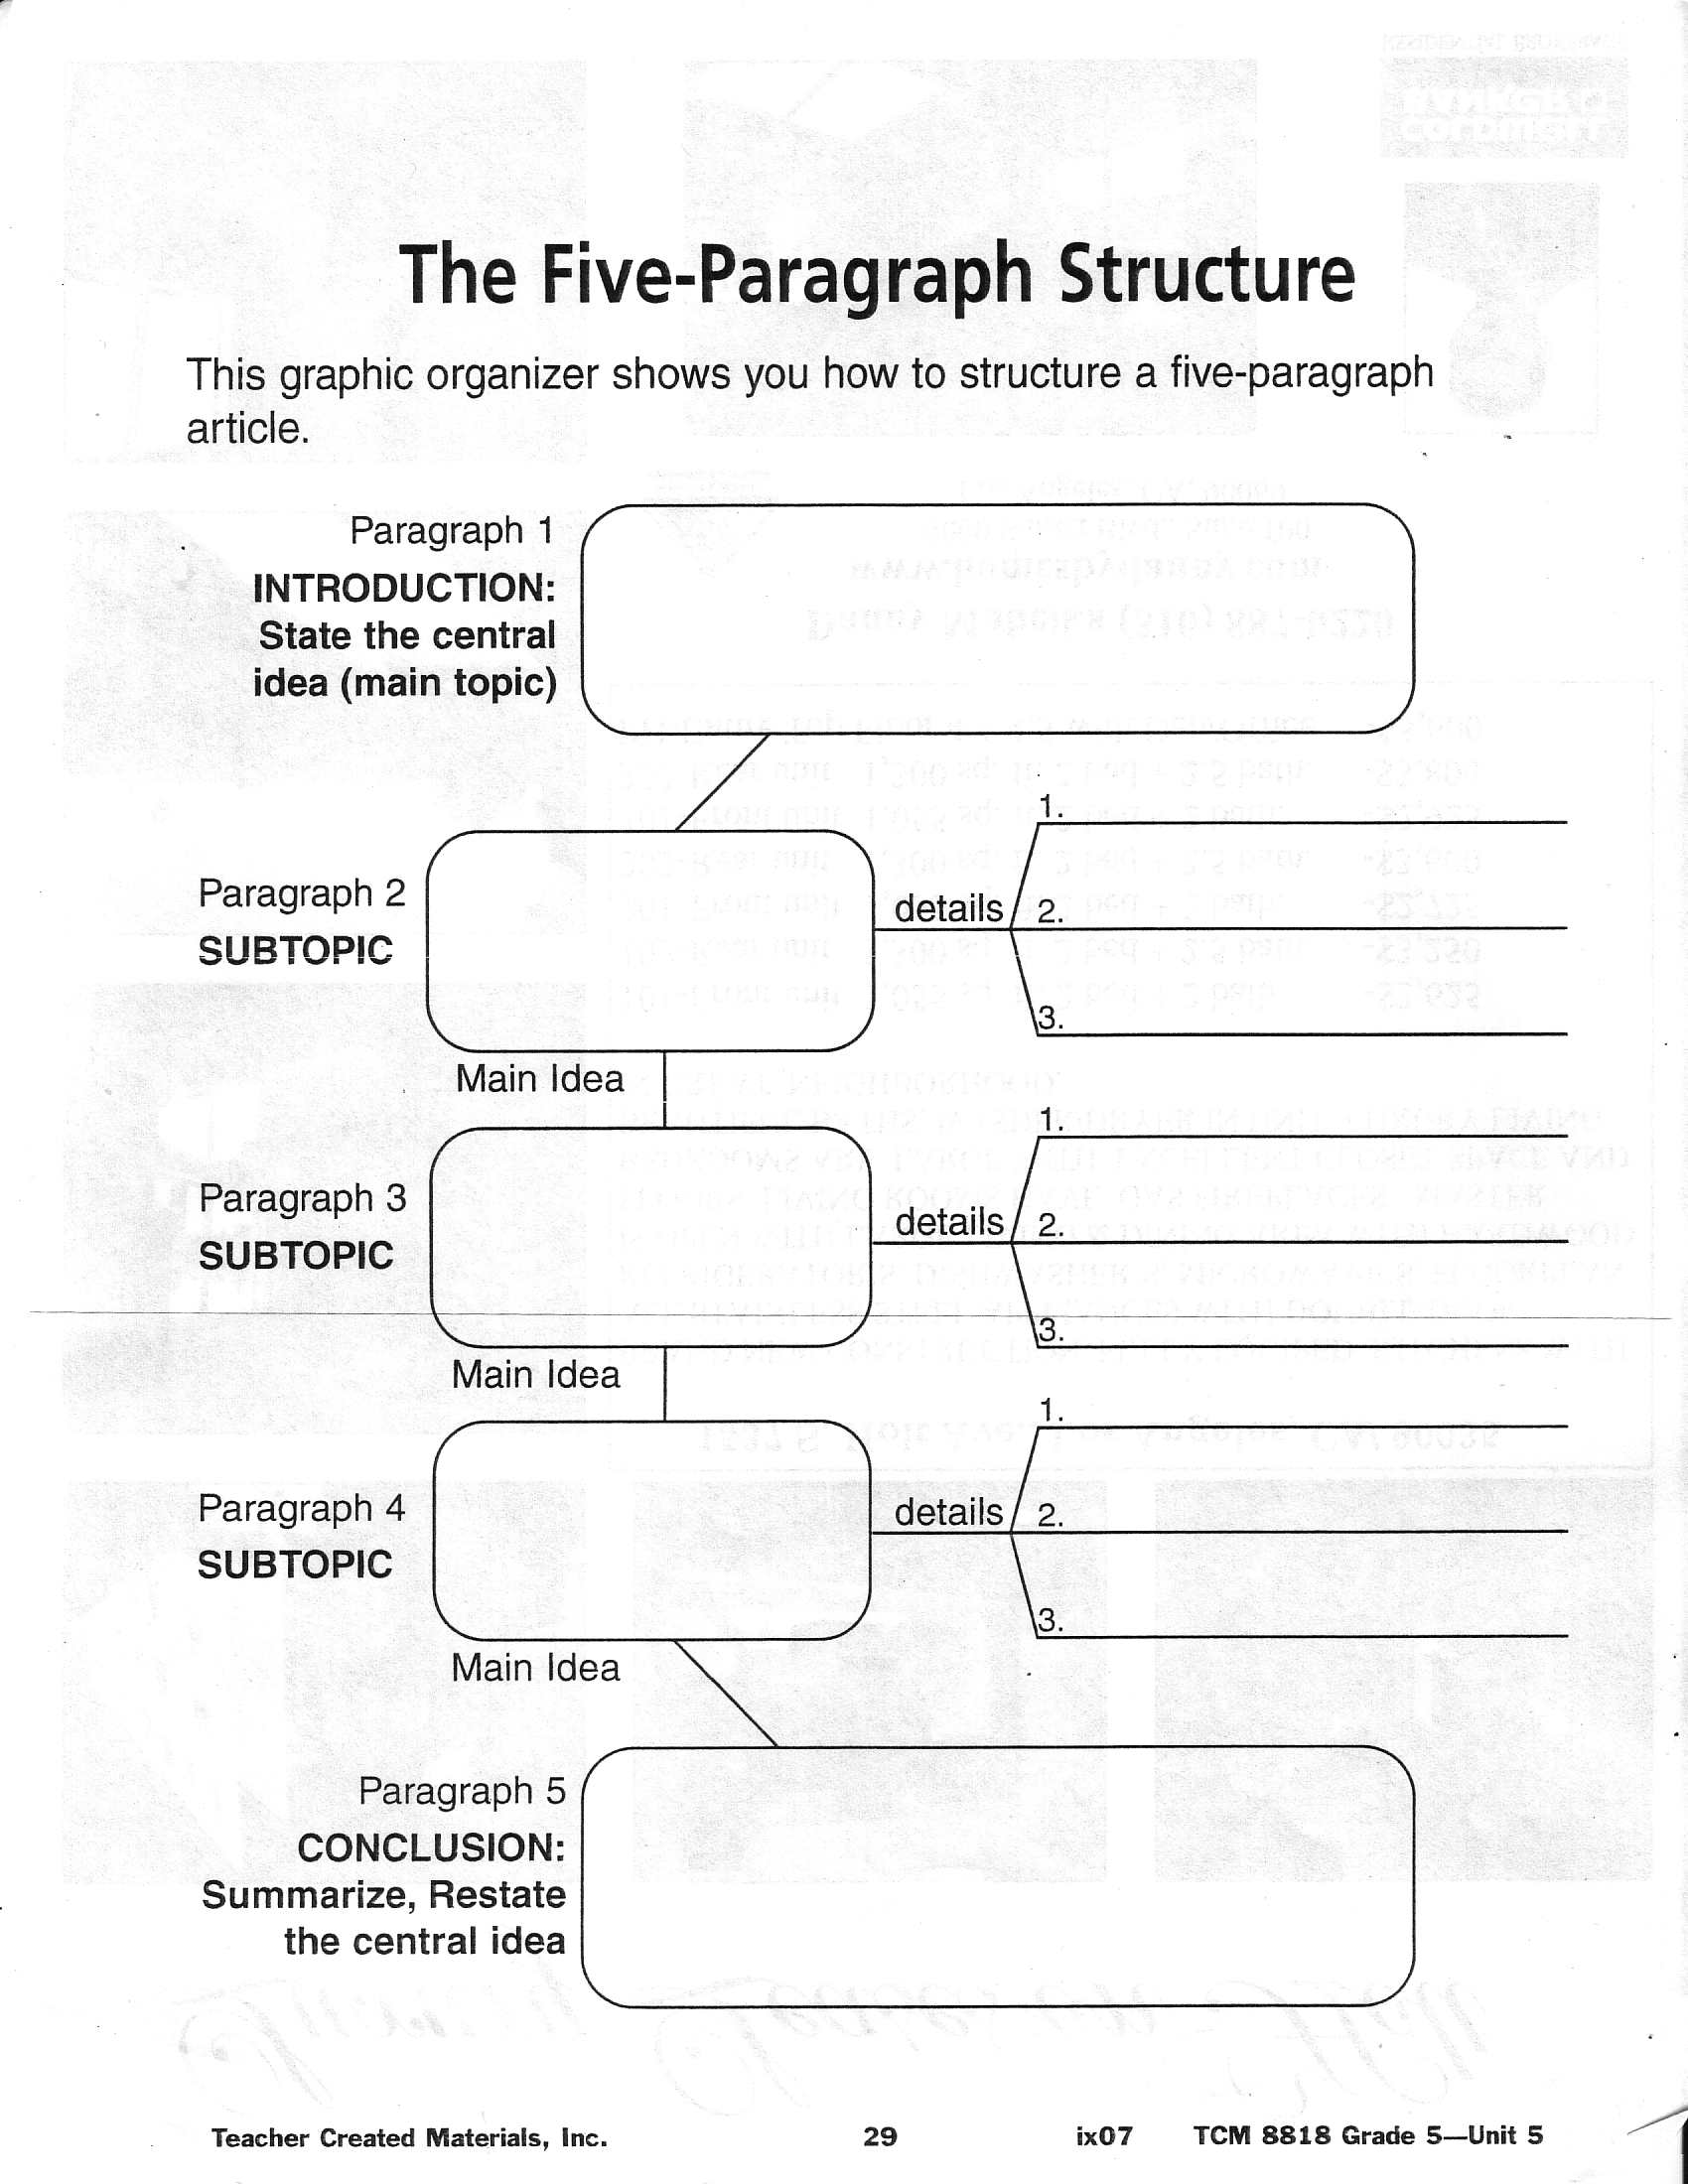 011 Essay Example Graphic Organizers For Writing Essays Organizer 563805 Marvelous 5 Paragraph Best Informative Full